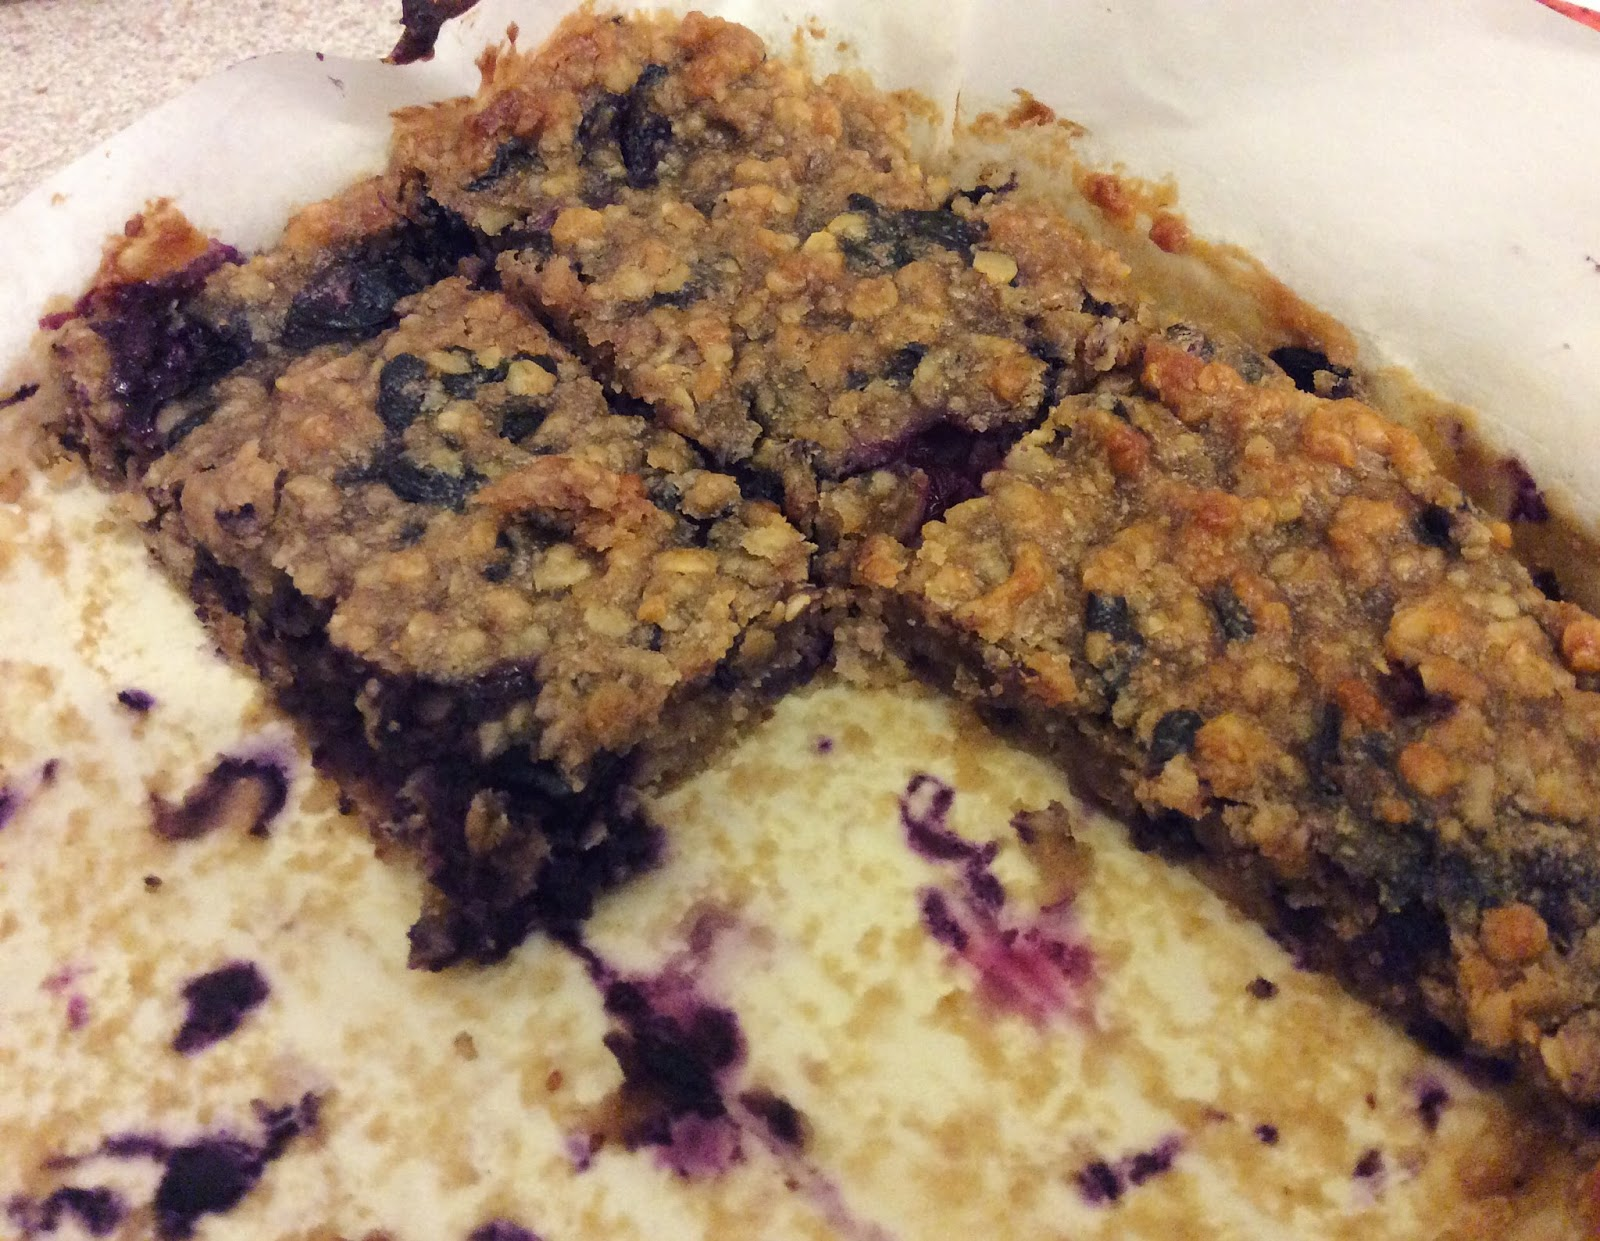 blueberry oatie bar homemade